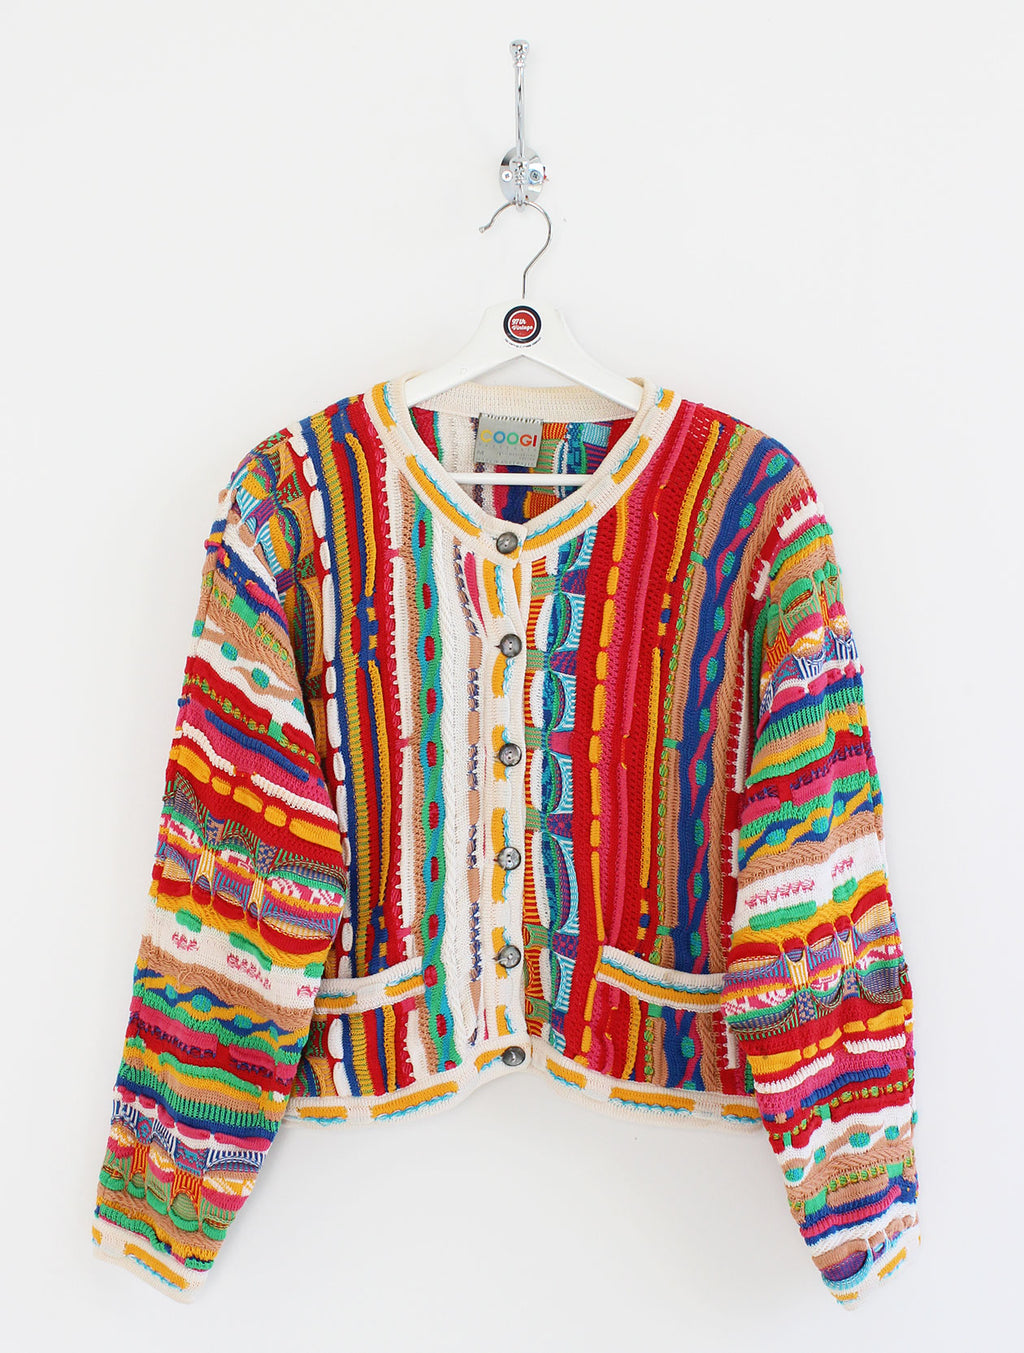 Women's Coogi Cardigan Jumper (M)